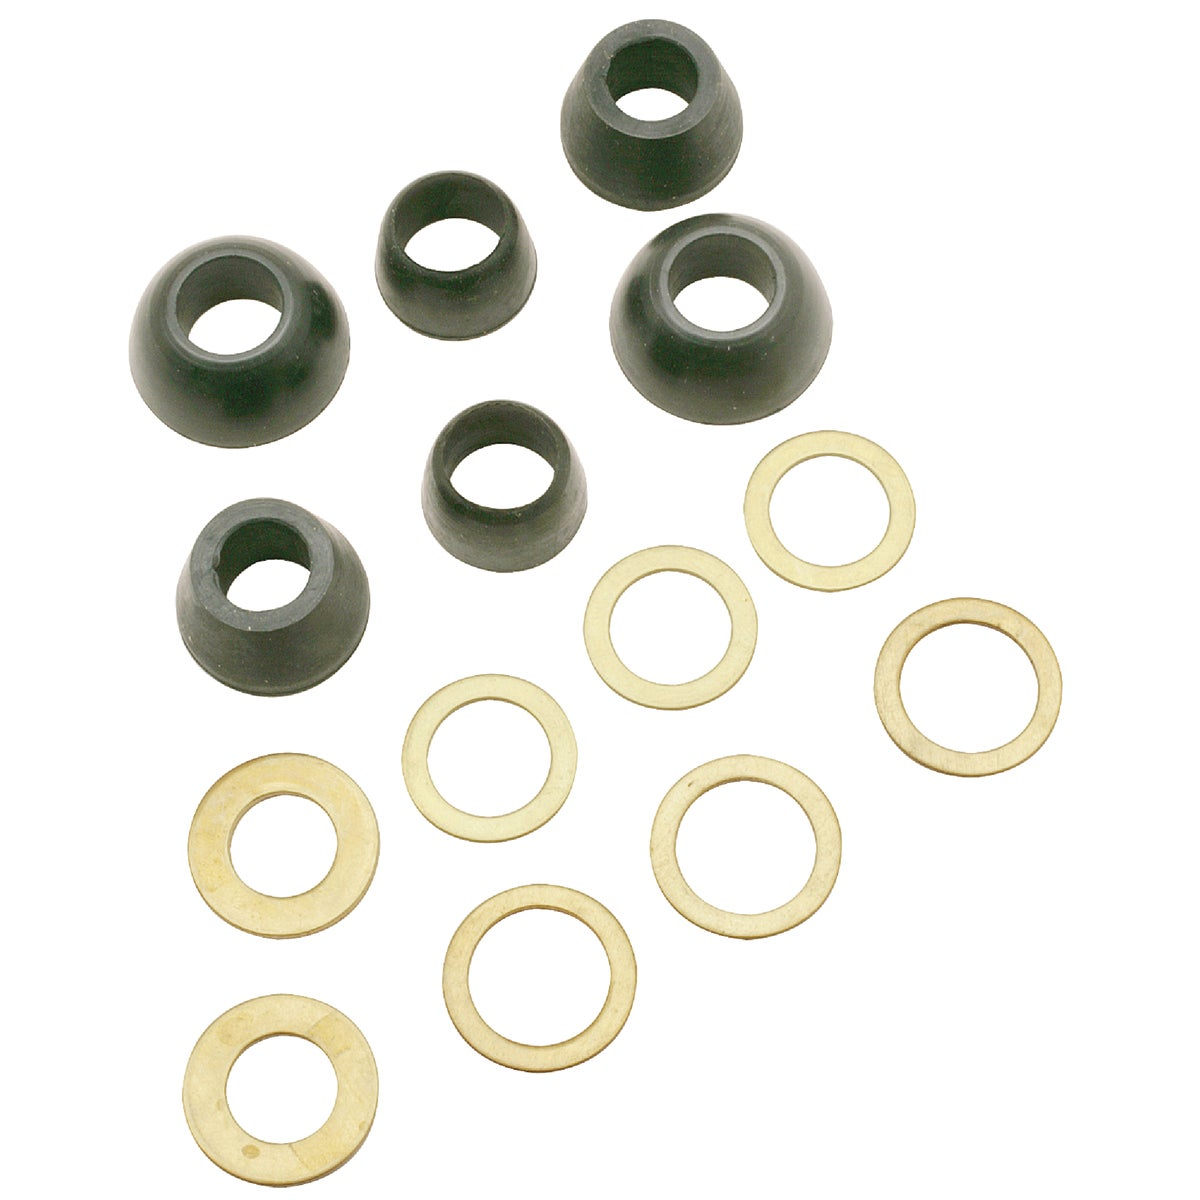 CONE WASHER ASSORTMENT - 409392 by Plumb Pak/keeney Mfg